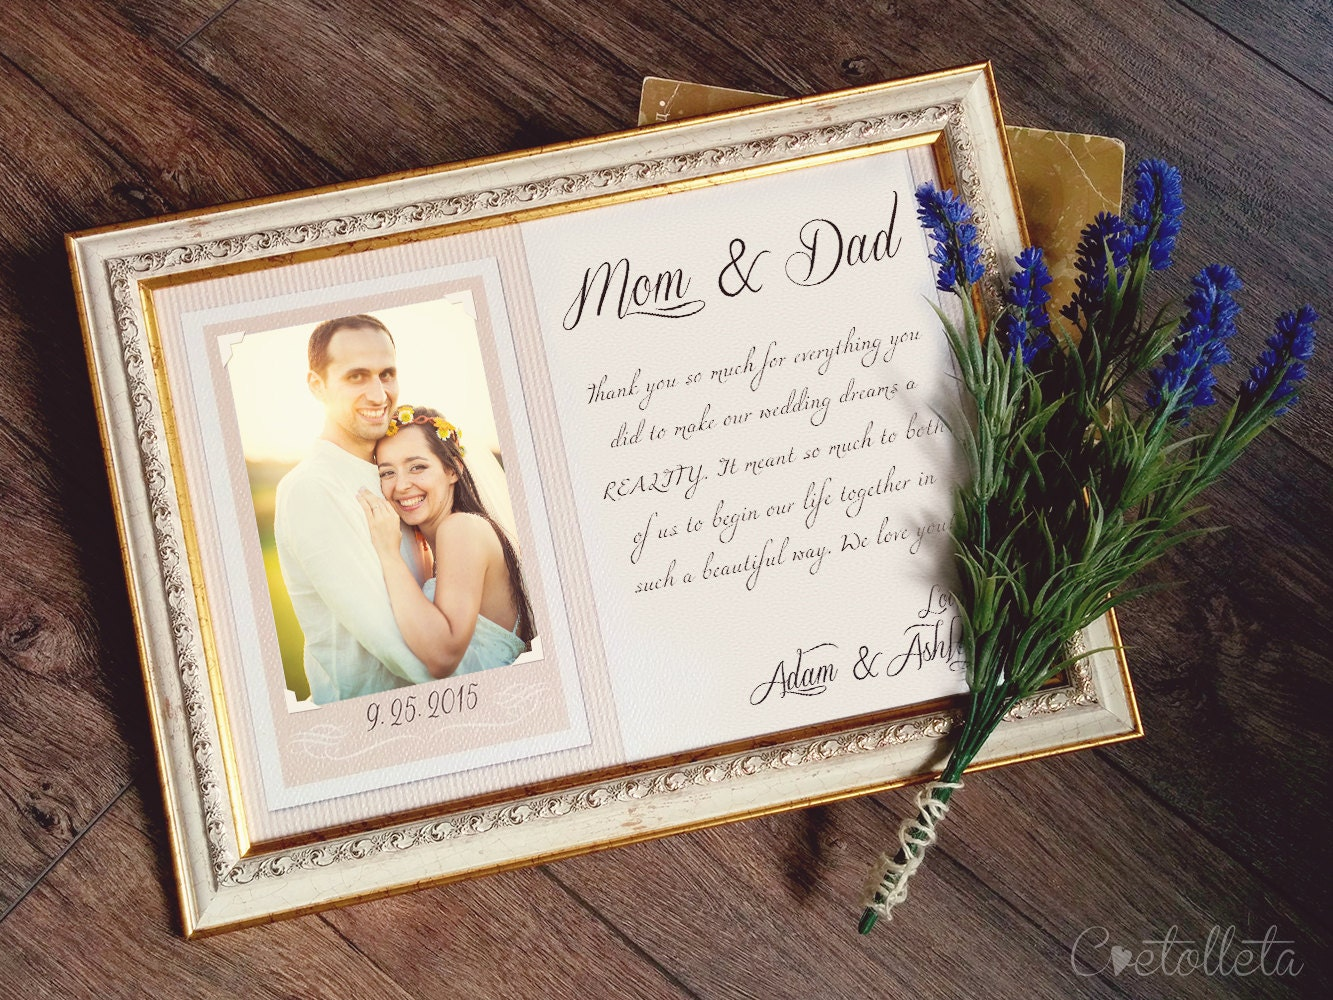 Weddings Gifts For Parents: Parents Wedding Gift-Parents Thank You Gift Wedding Gift For